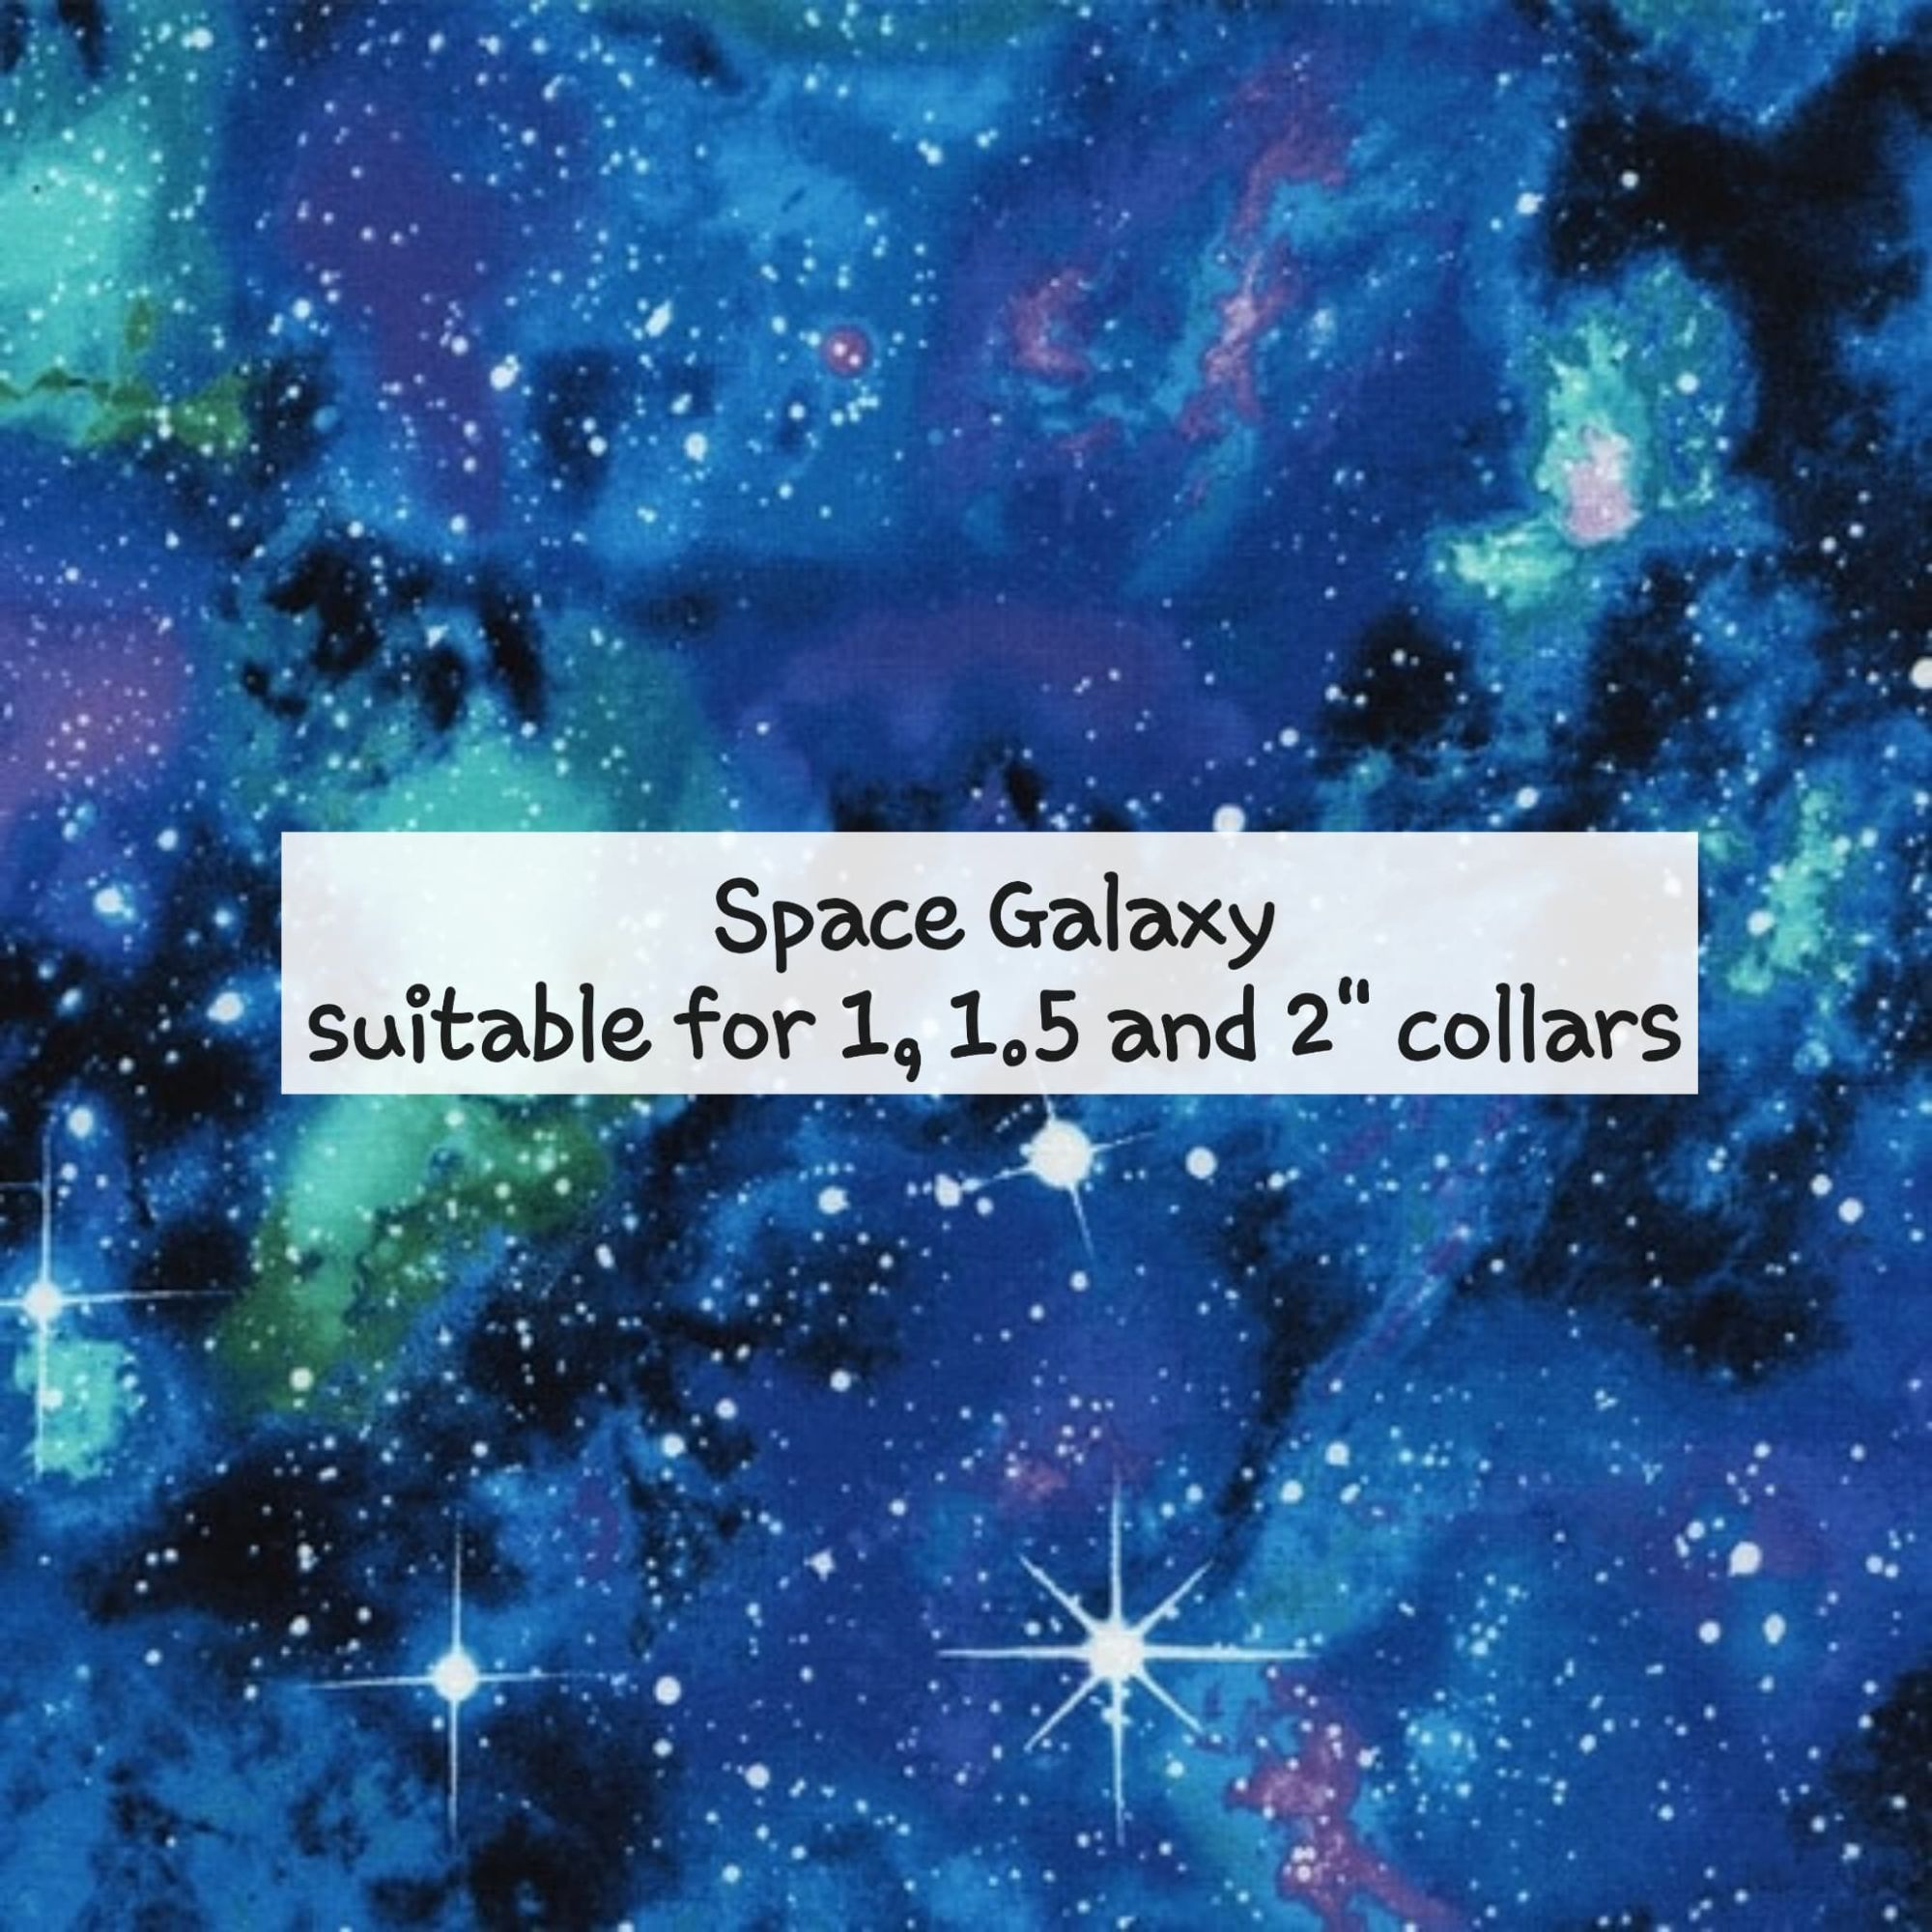 Space Galaxy - Suitable for 1, 1.5 and 2 inch collars